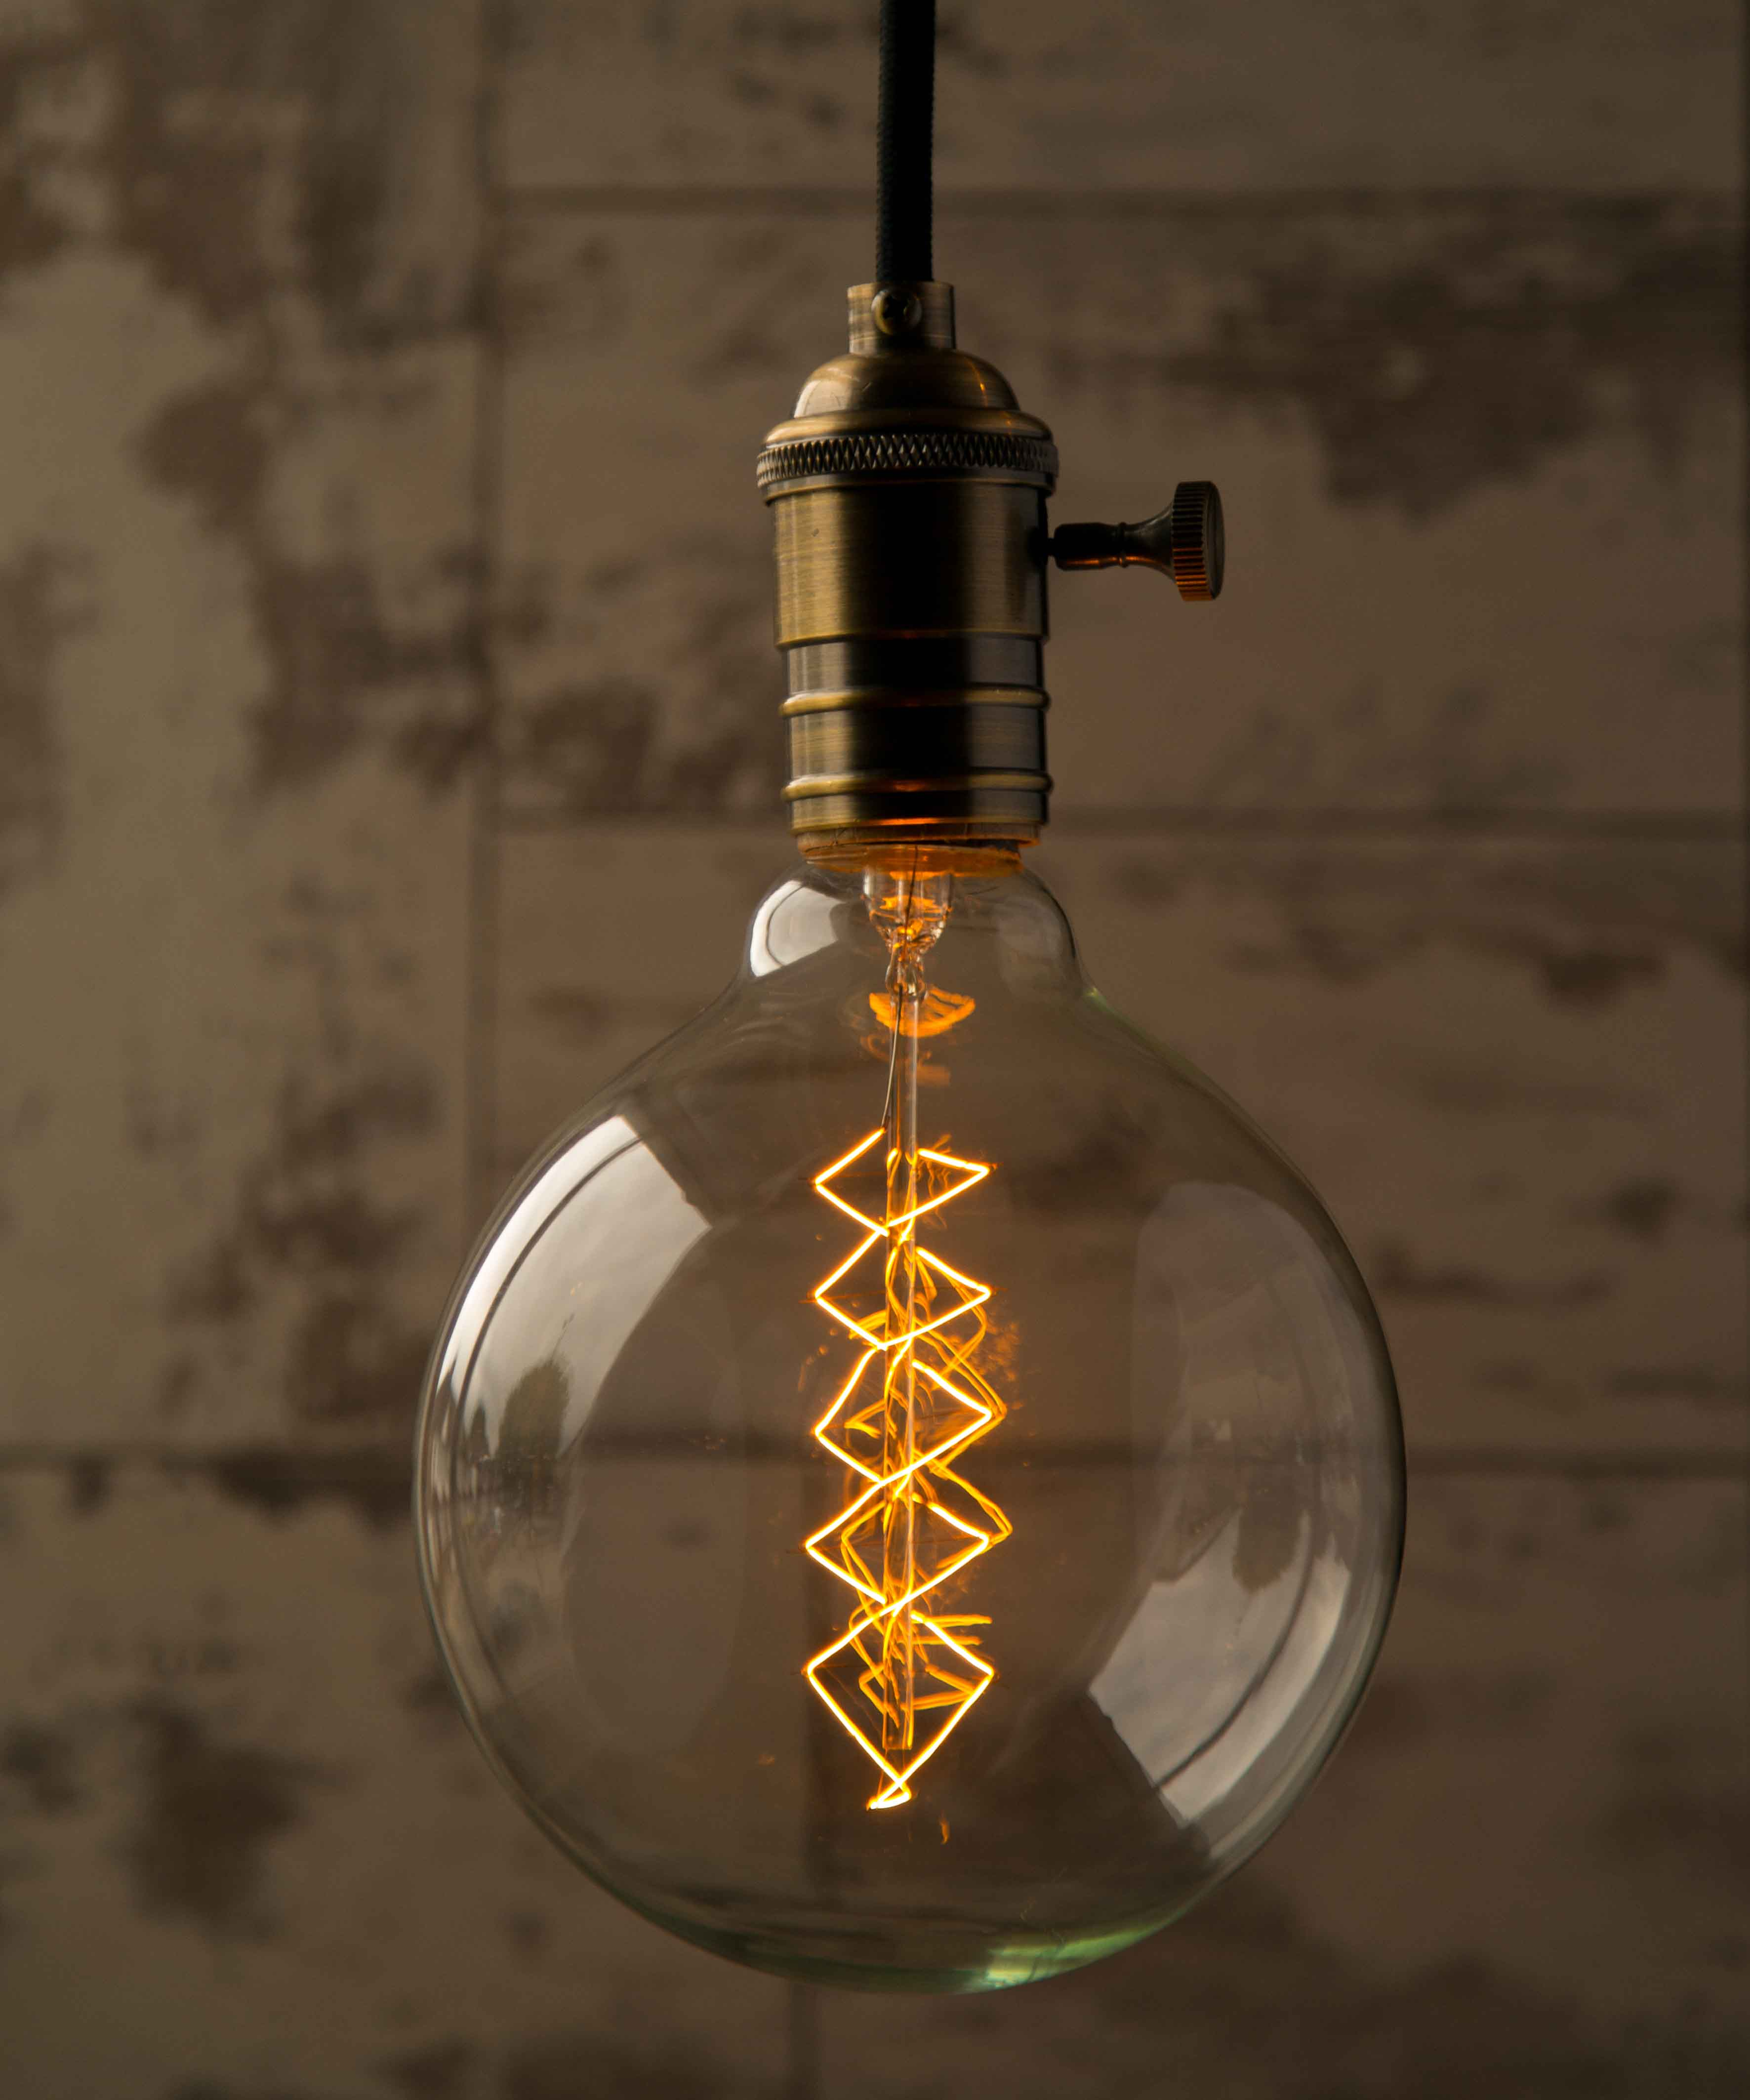 Commercial Lighting Bulbs: Vintage Lighting, Industrial